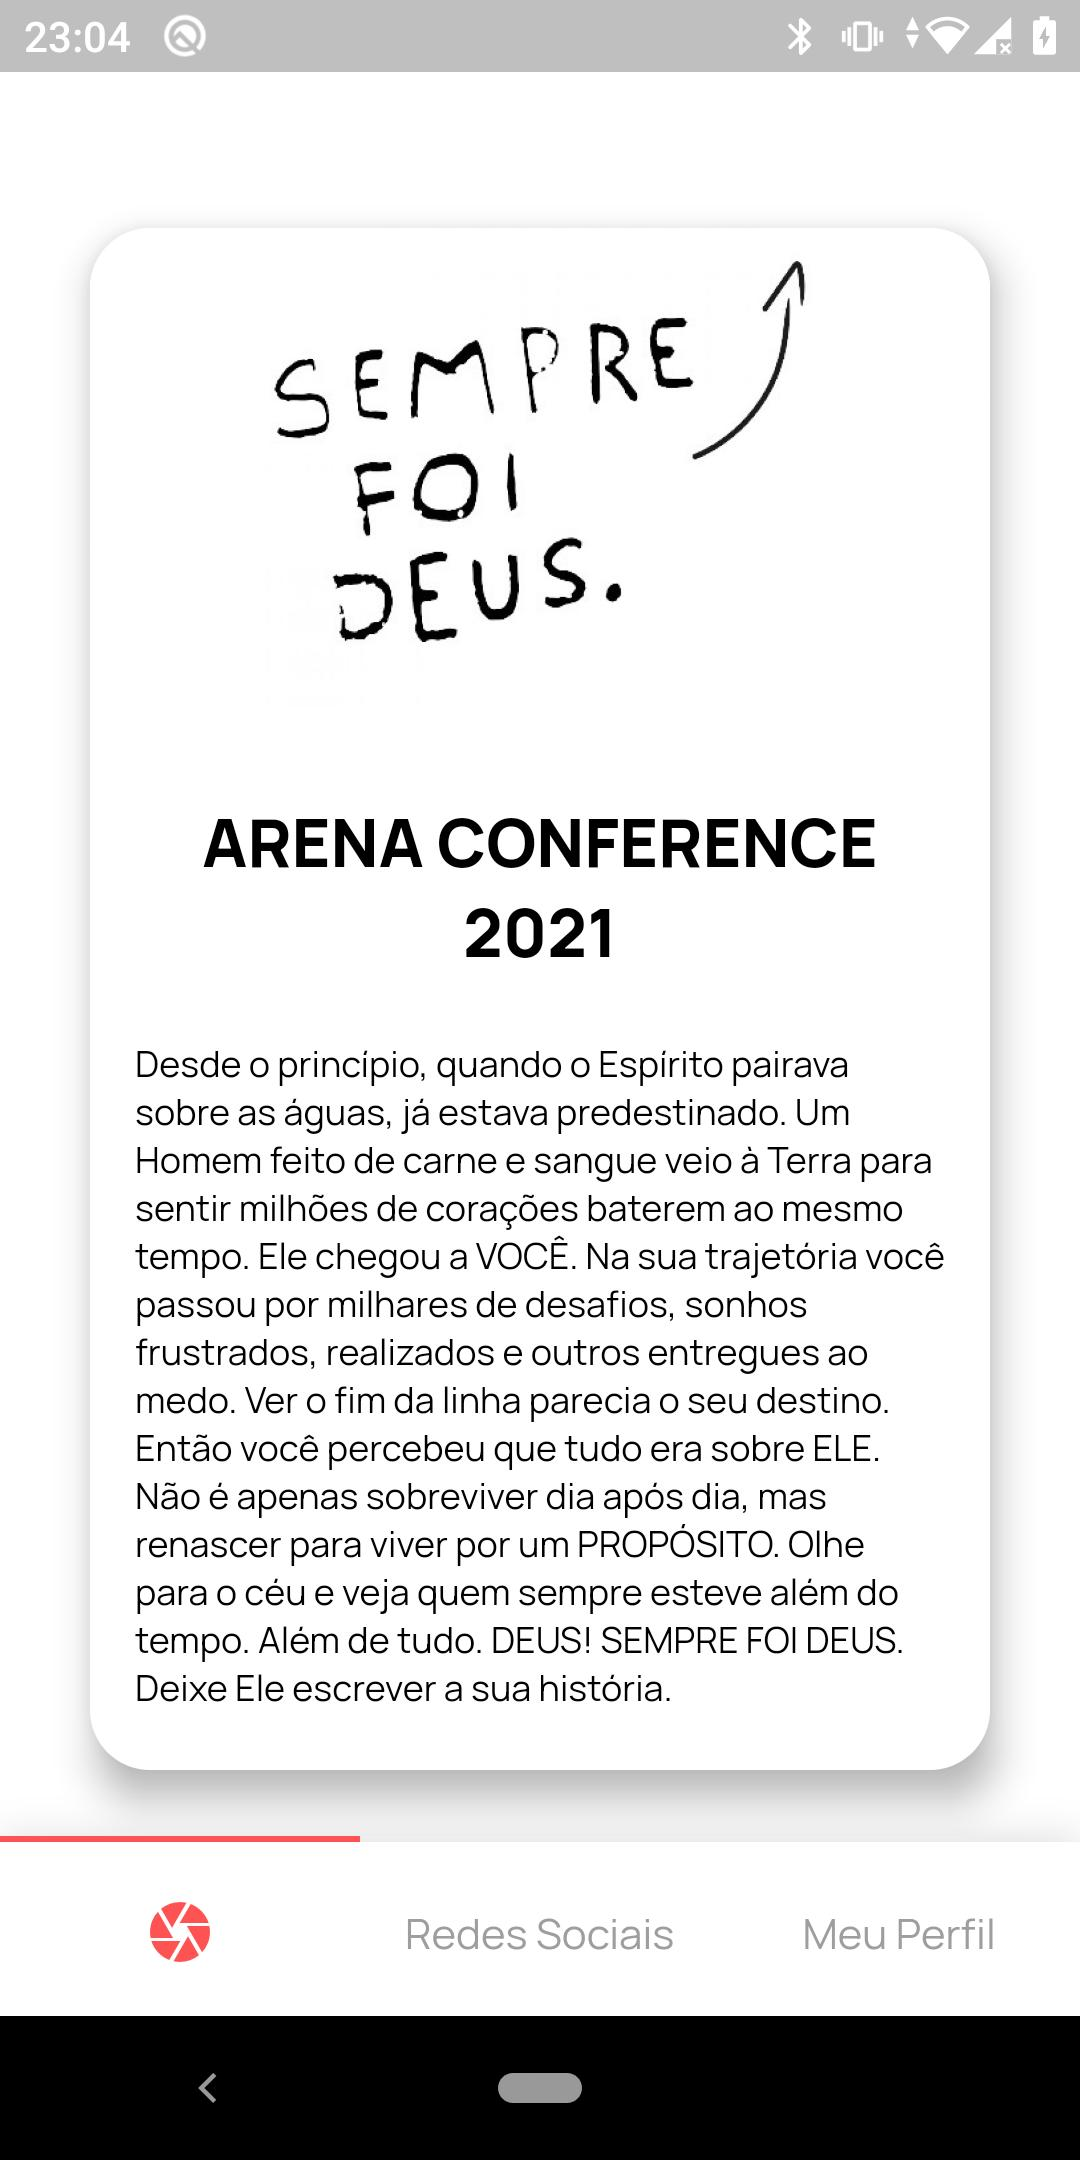 Arena Conference 1.1.4 Screenshot 3